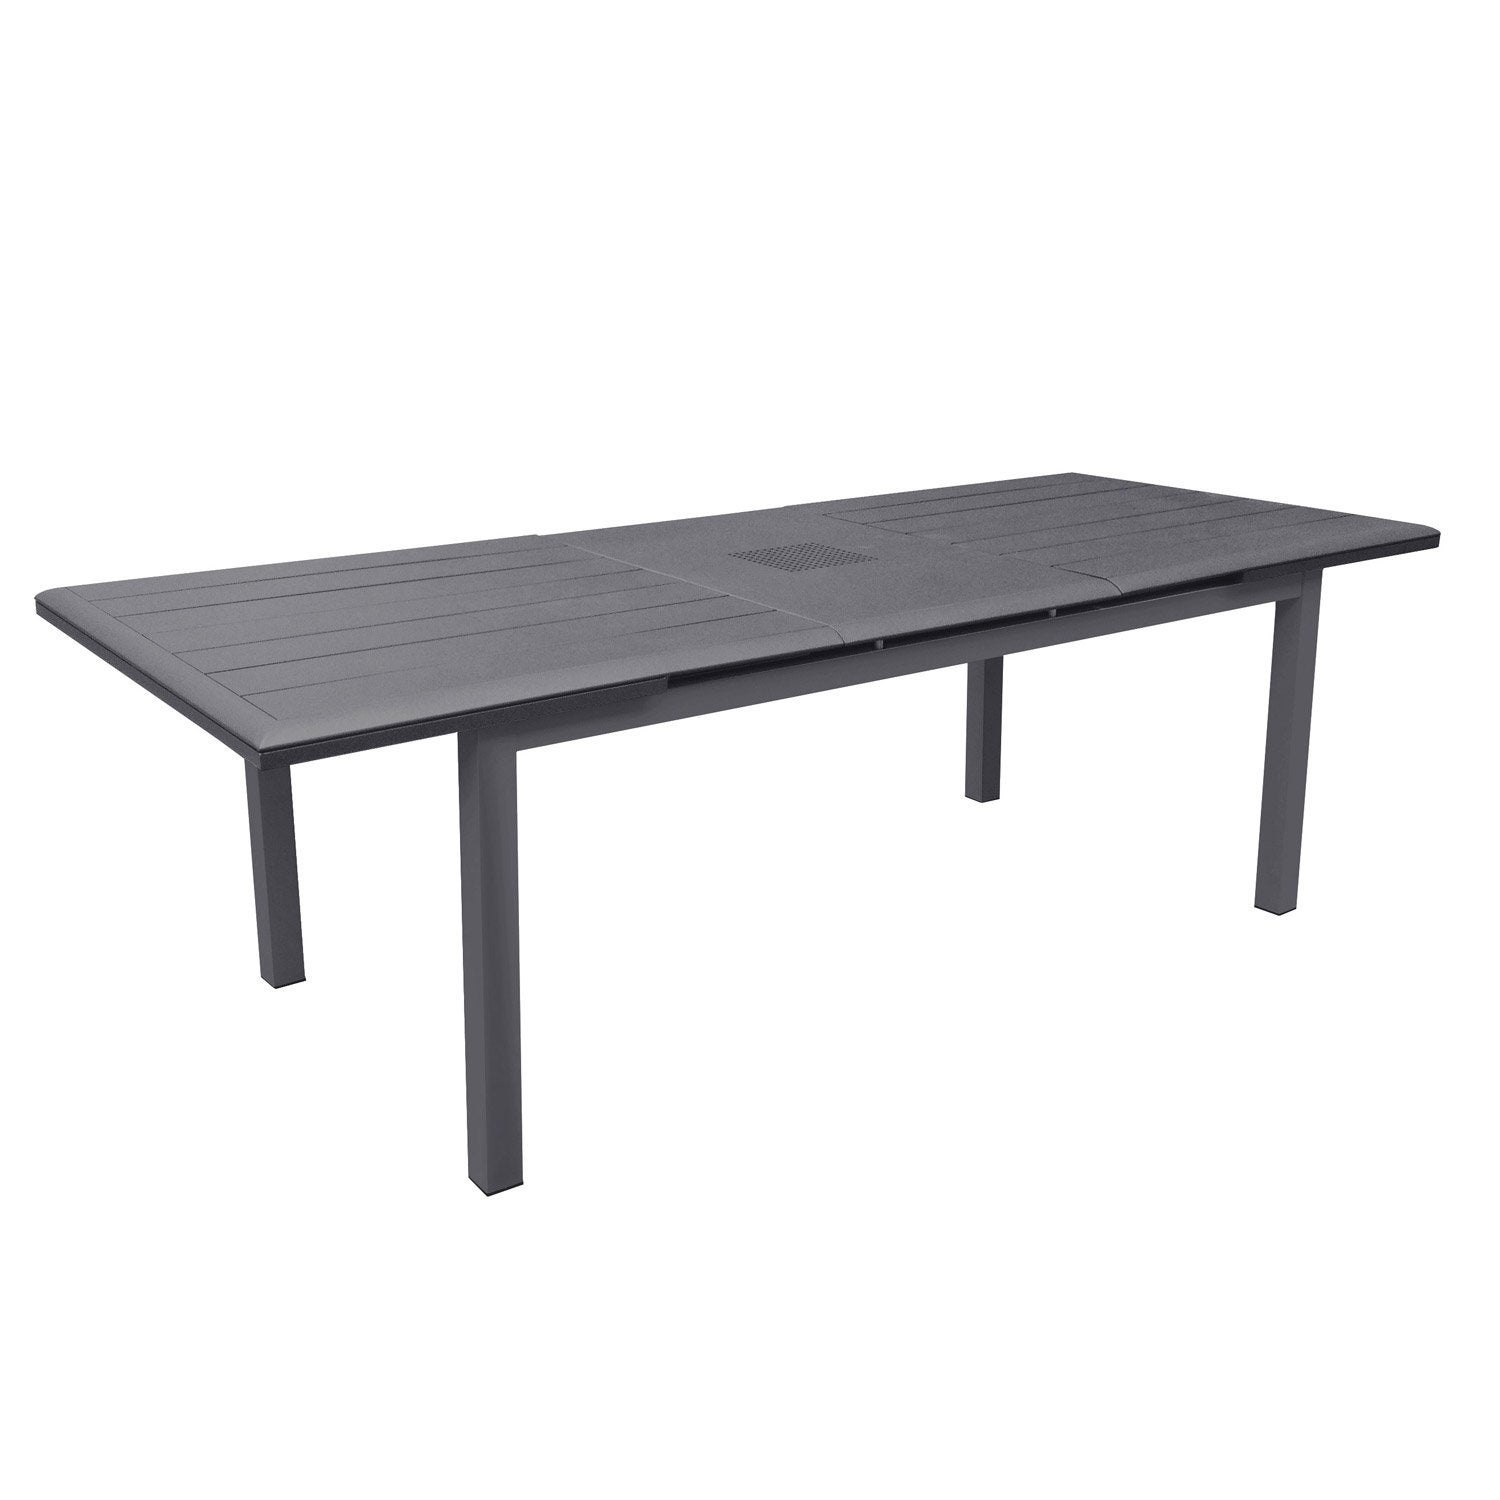 Table de jardin louisiane rectangulaire gris 6 8 personnes for Table 6 personnes dimensions